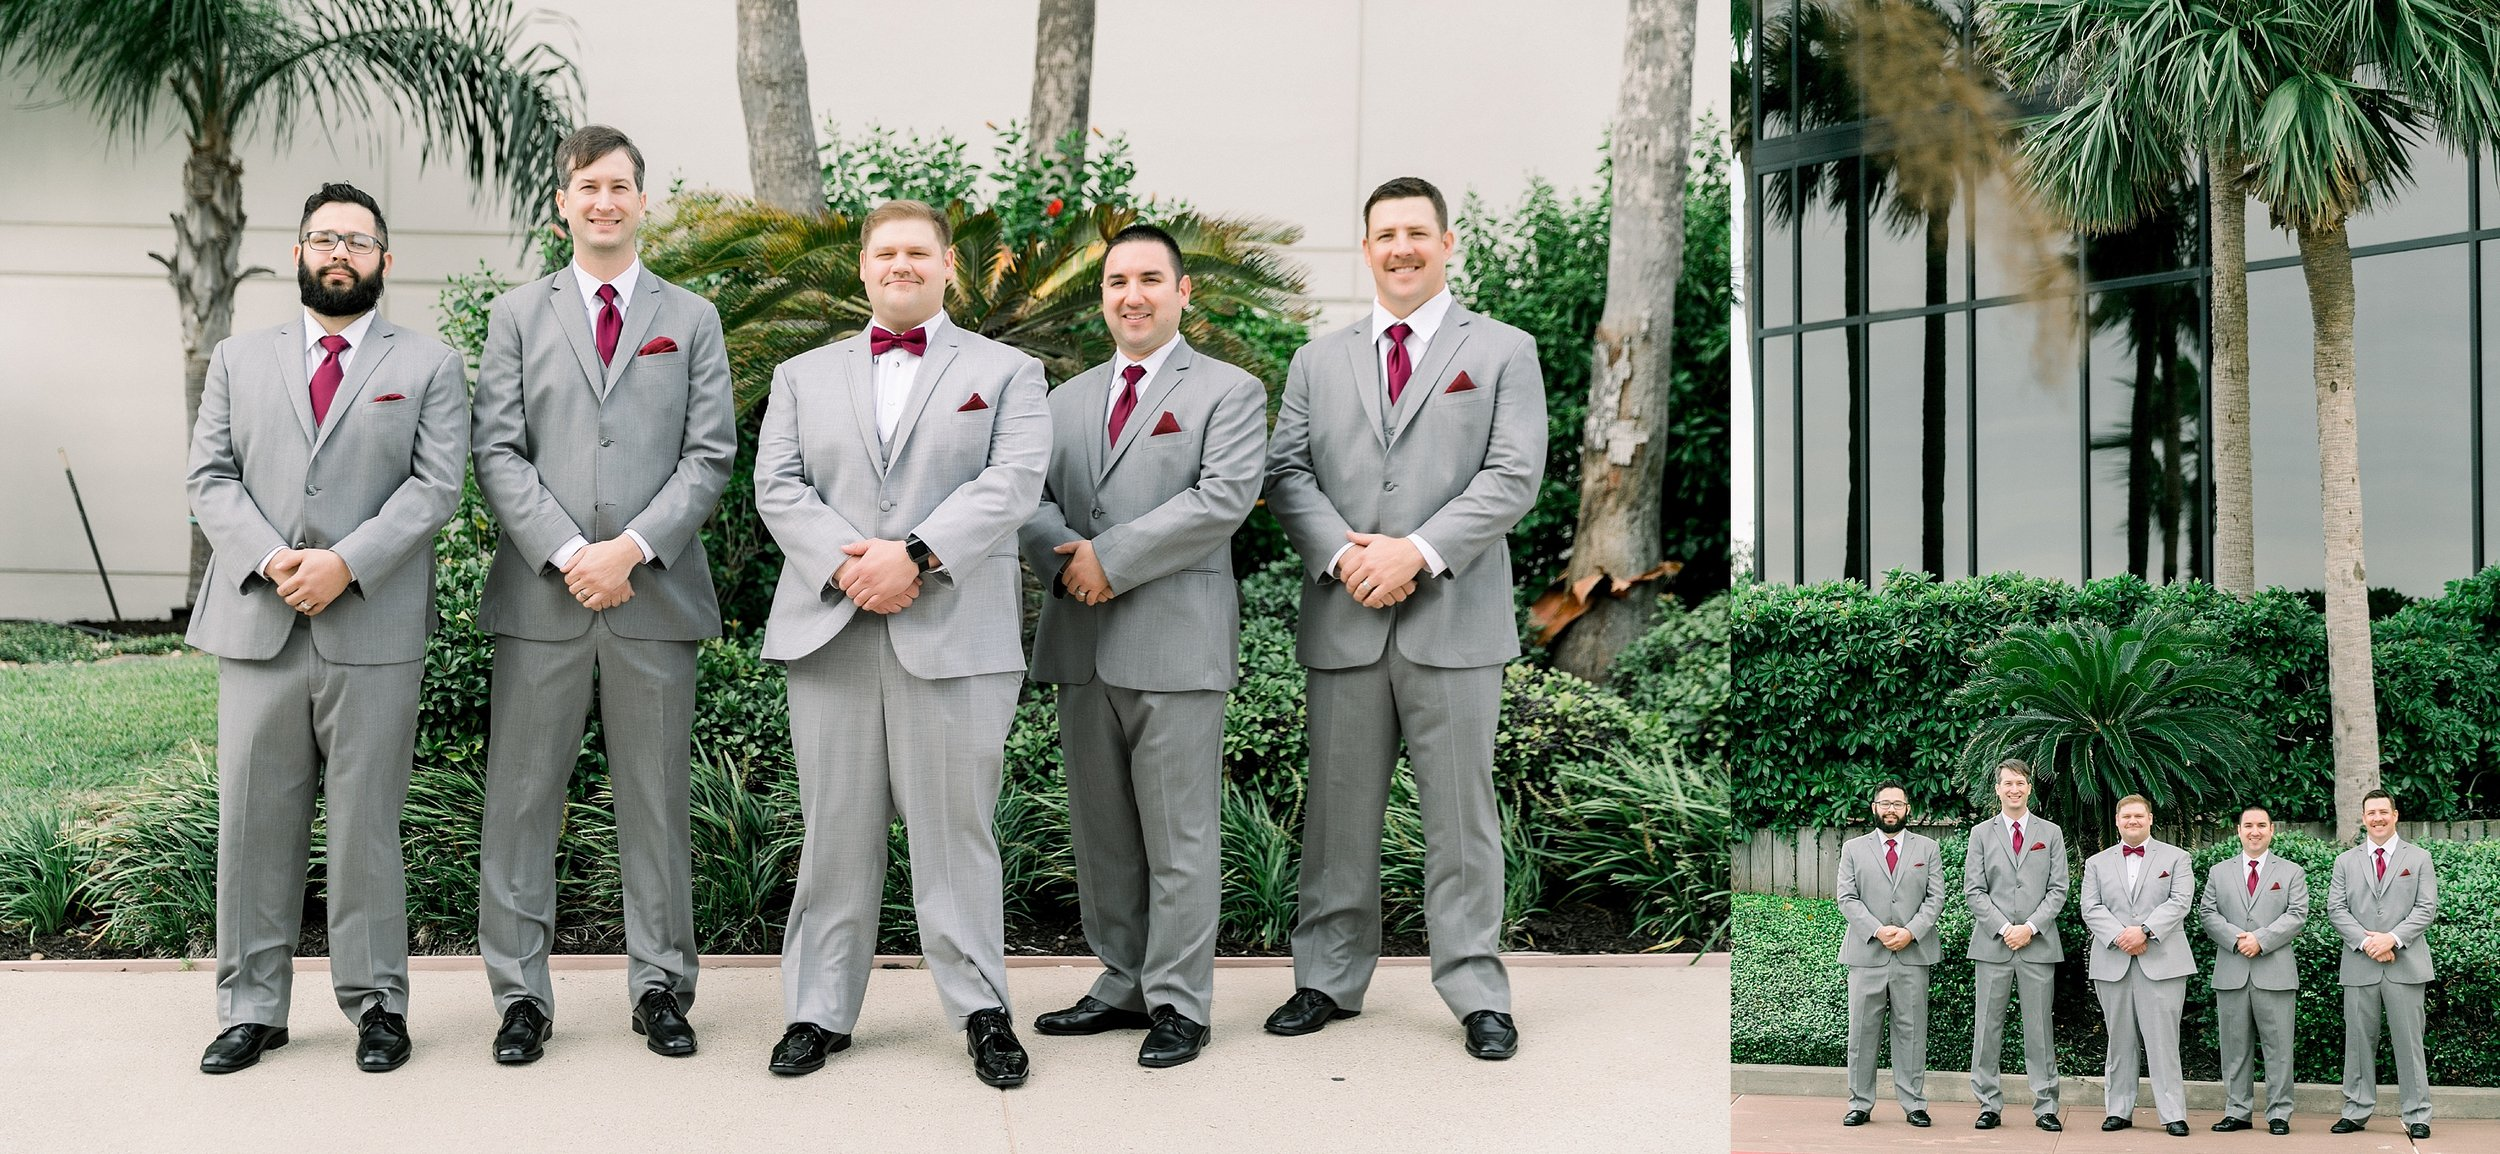 gaslight-at-courtyard-square-corpus-christi-wedding-omni-hotel-fall-winter-wedding-texas-wedding-photographer-lauren-pinson-0018.jpg